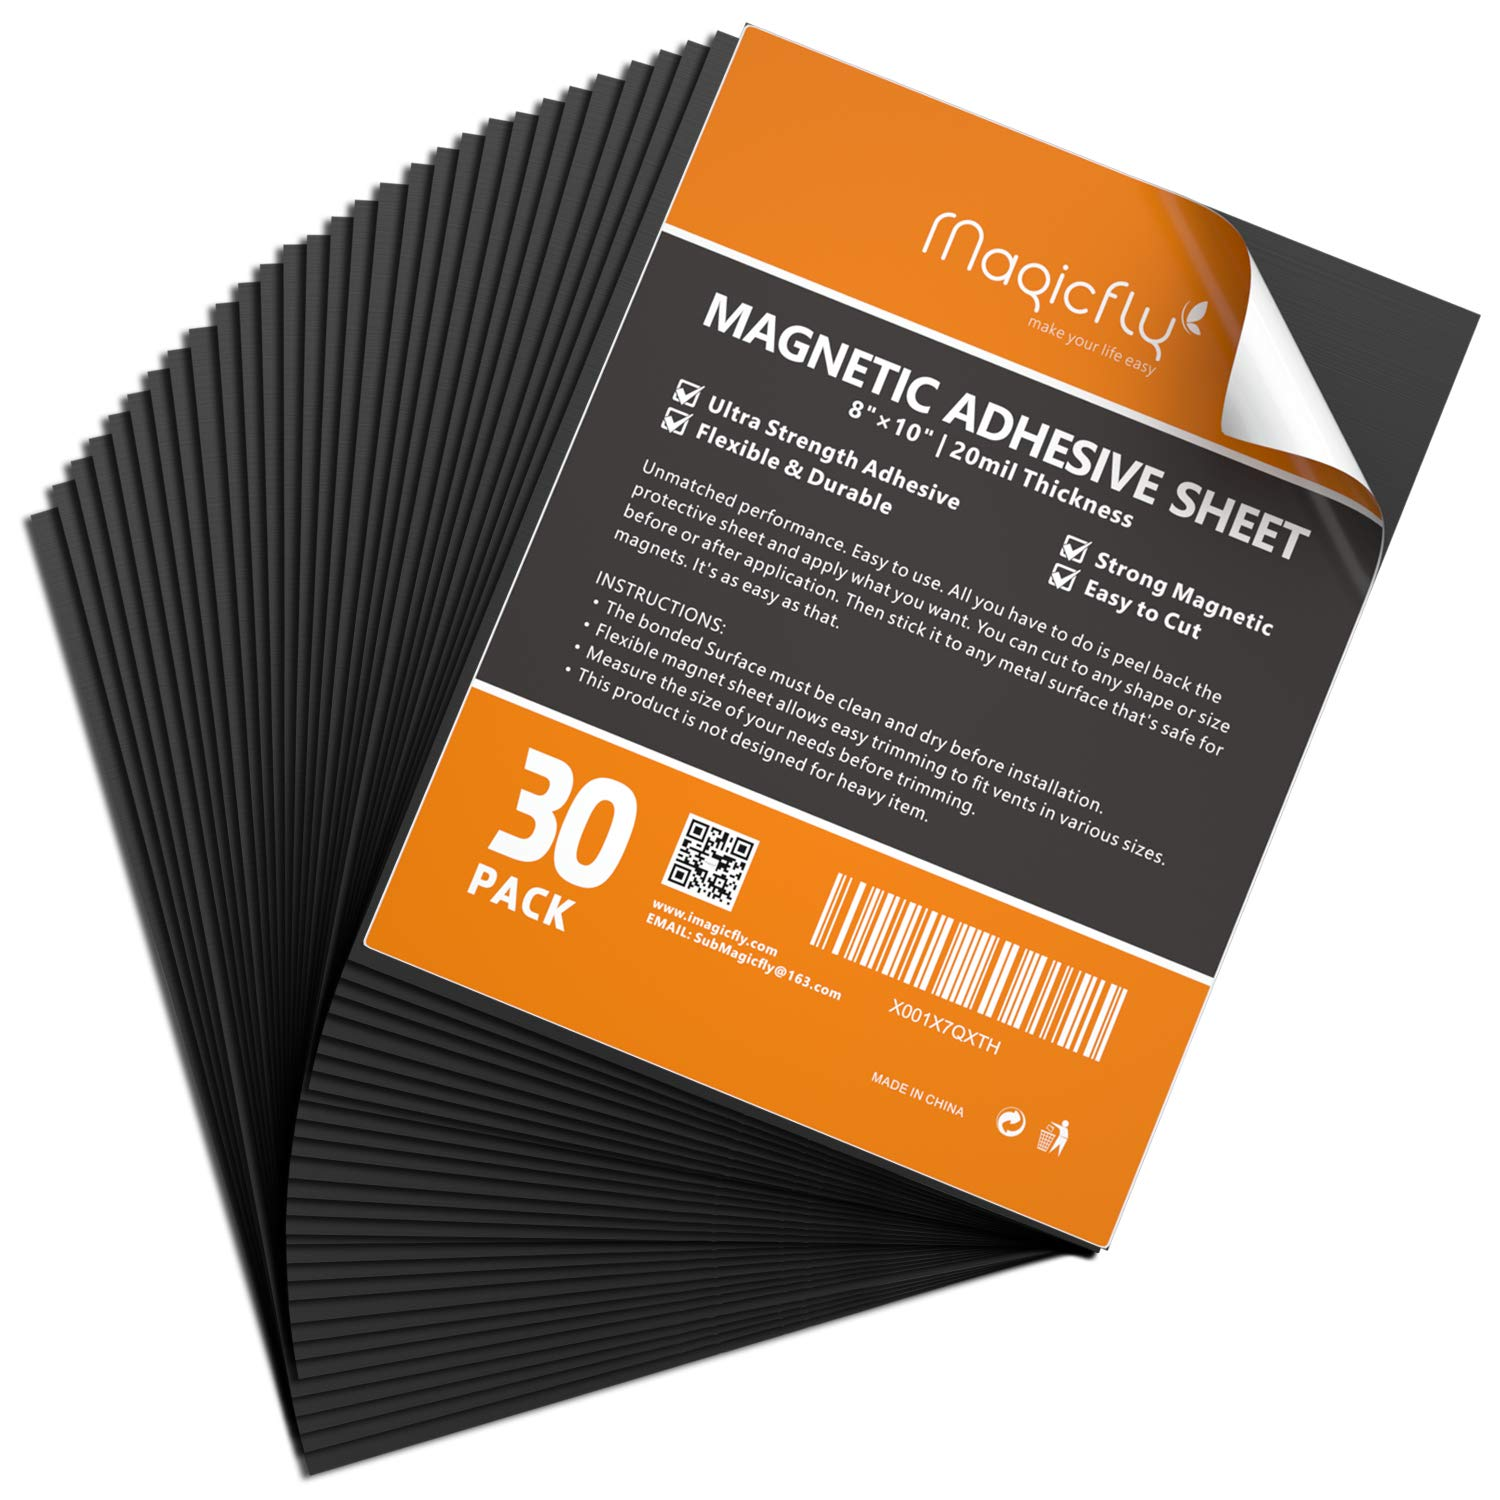 Magnetic Adhesive Sheet 8 X 10 Inch, Magicfly Pack of 30 Flexible Magnet Sheets with Adhesive, Easy Peel and Stick Self Adhesive for Photos Crafts by Magicfly (Image #1)